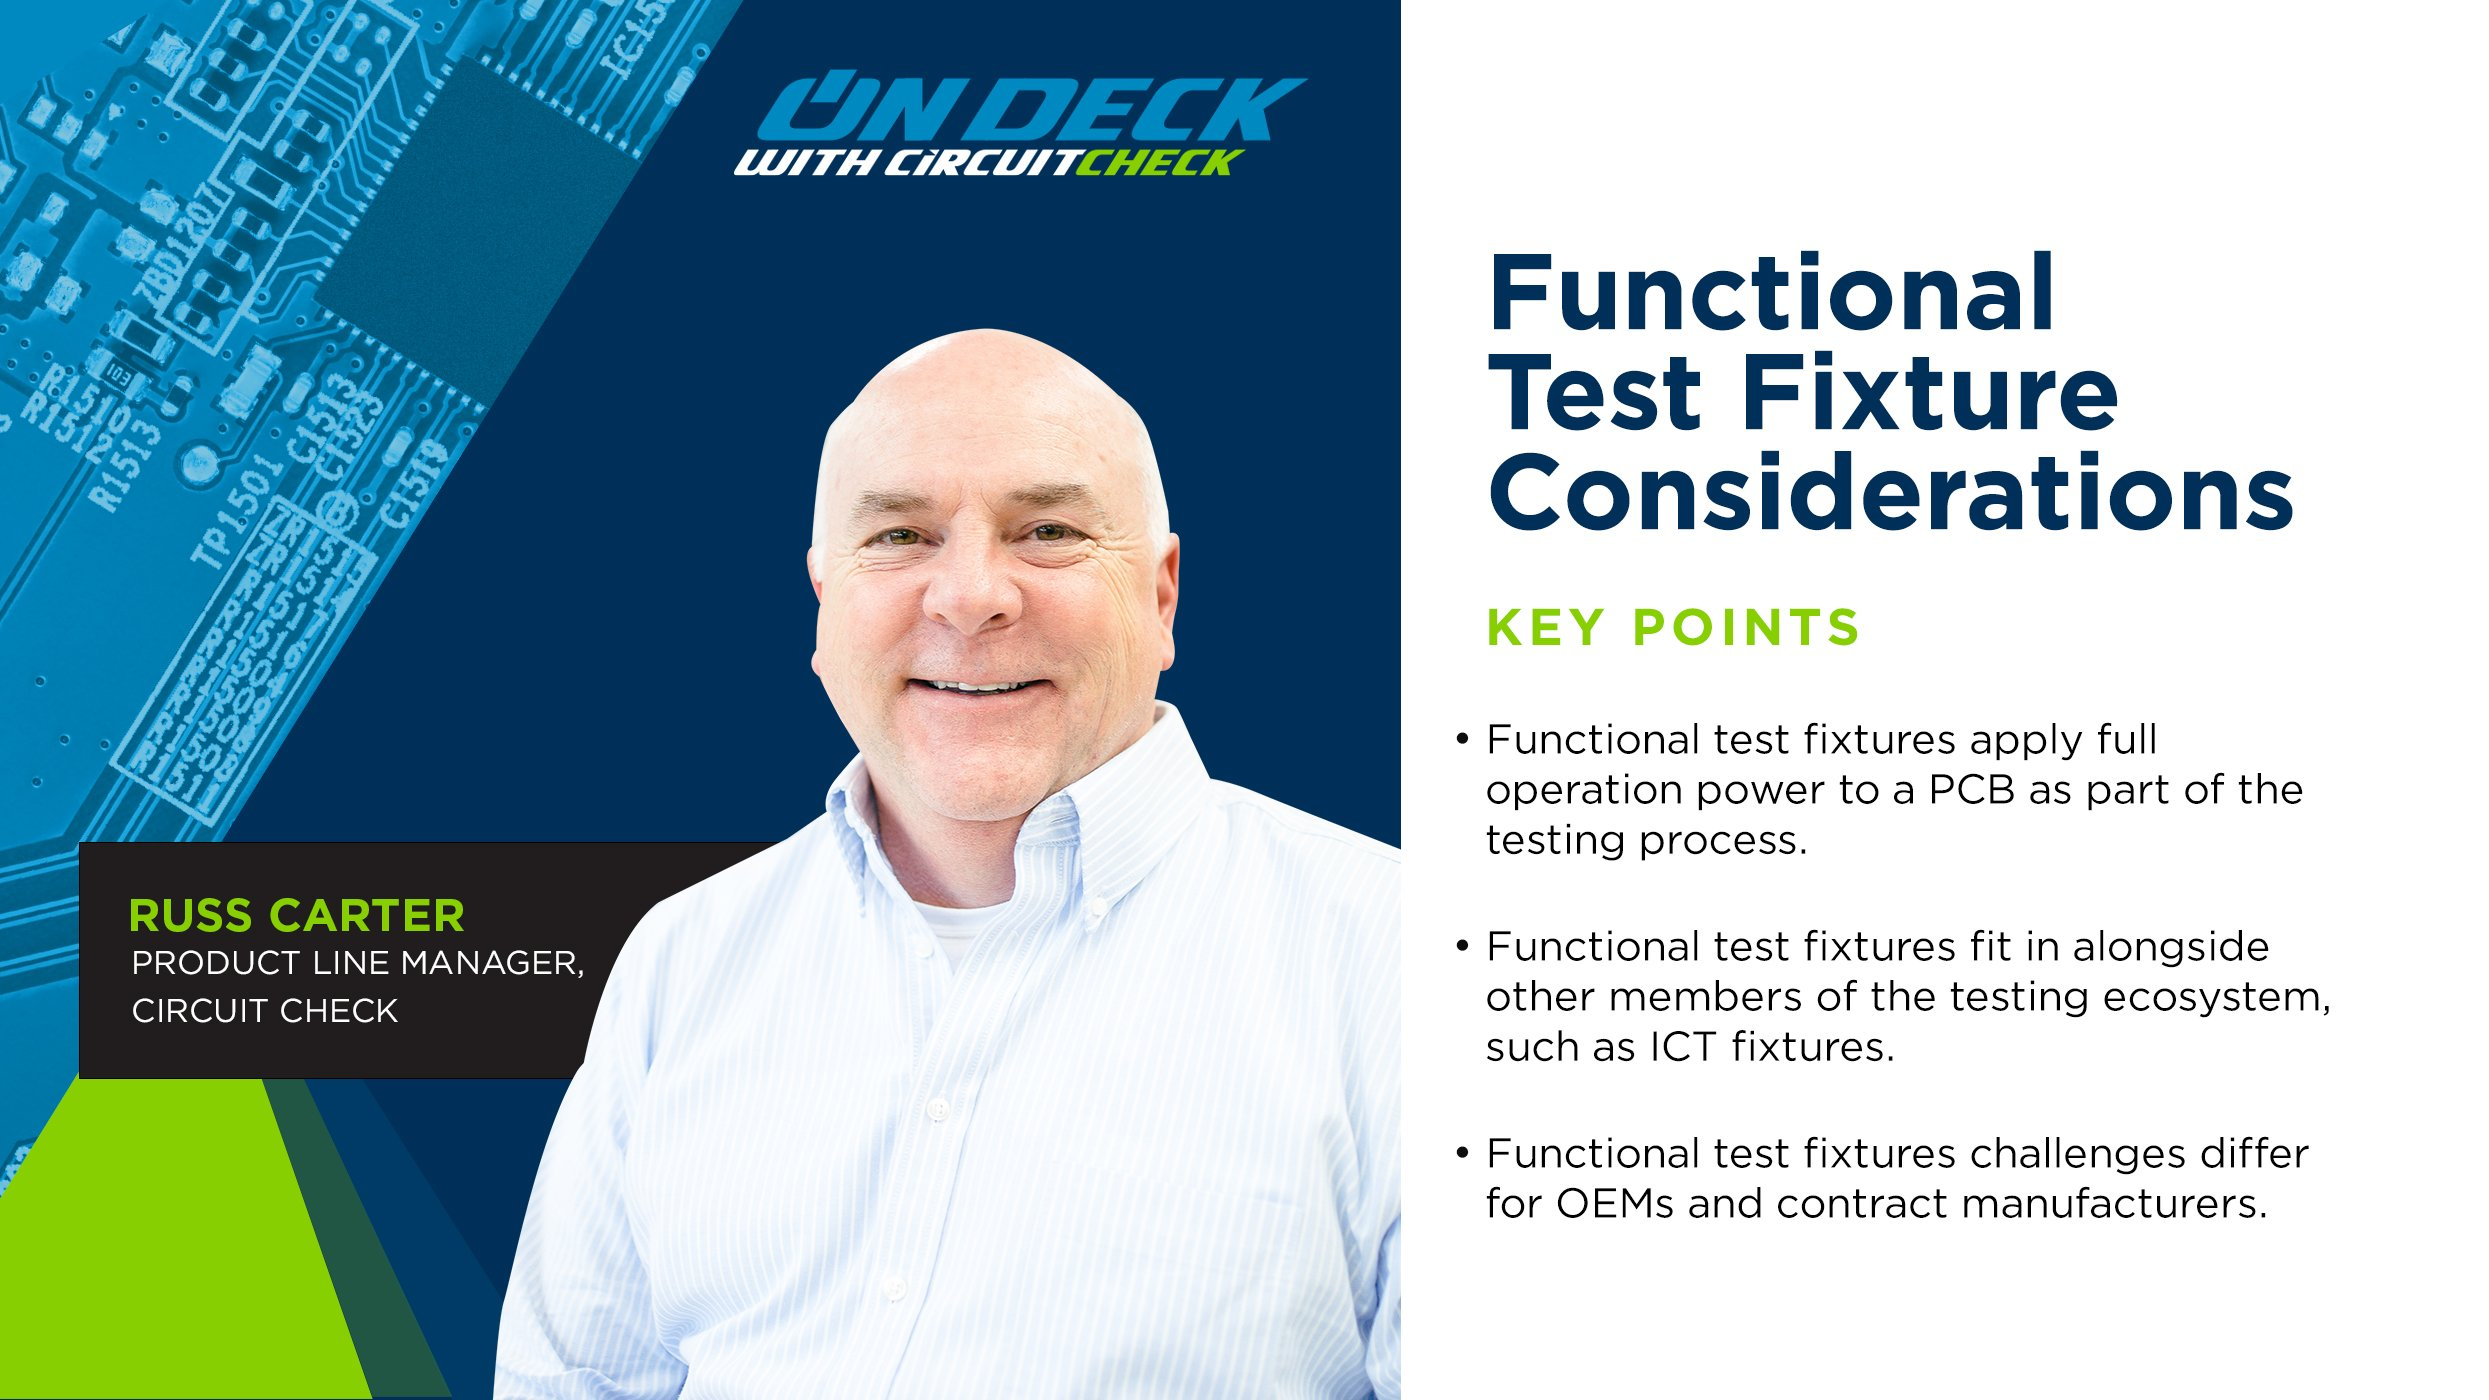 On Deck with Circuit Check - Functional Test Fixture Considerations